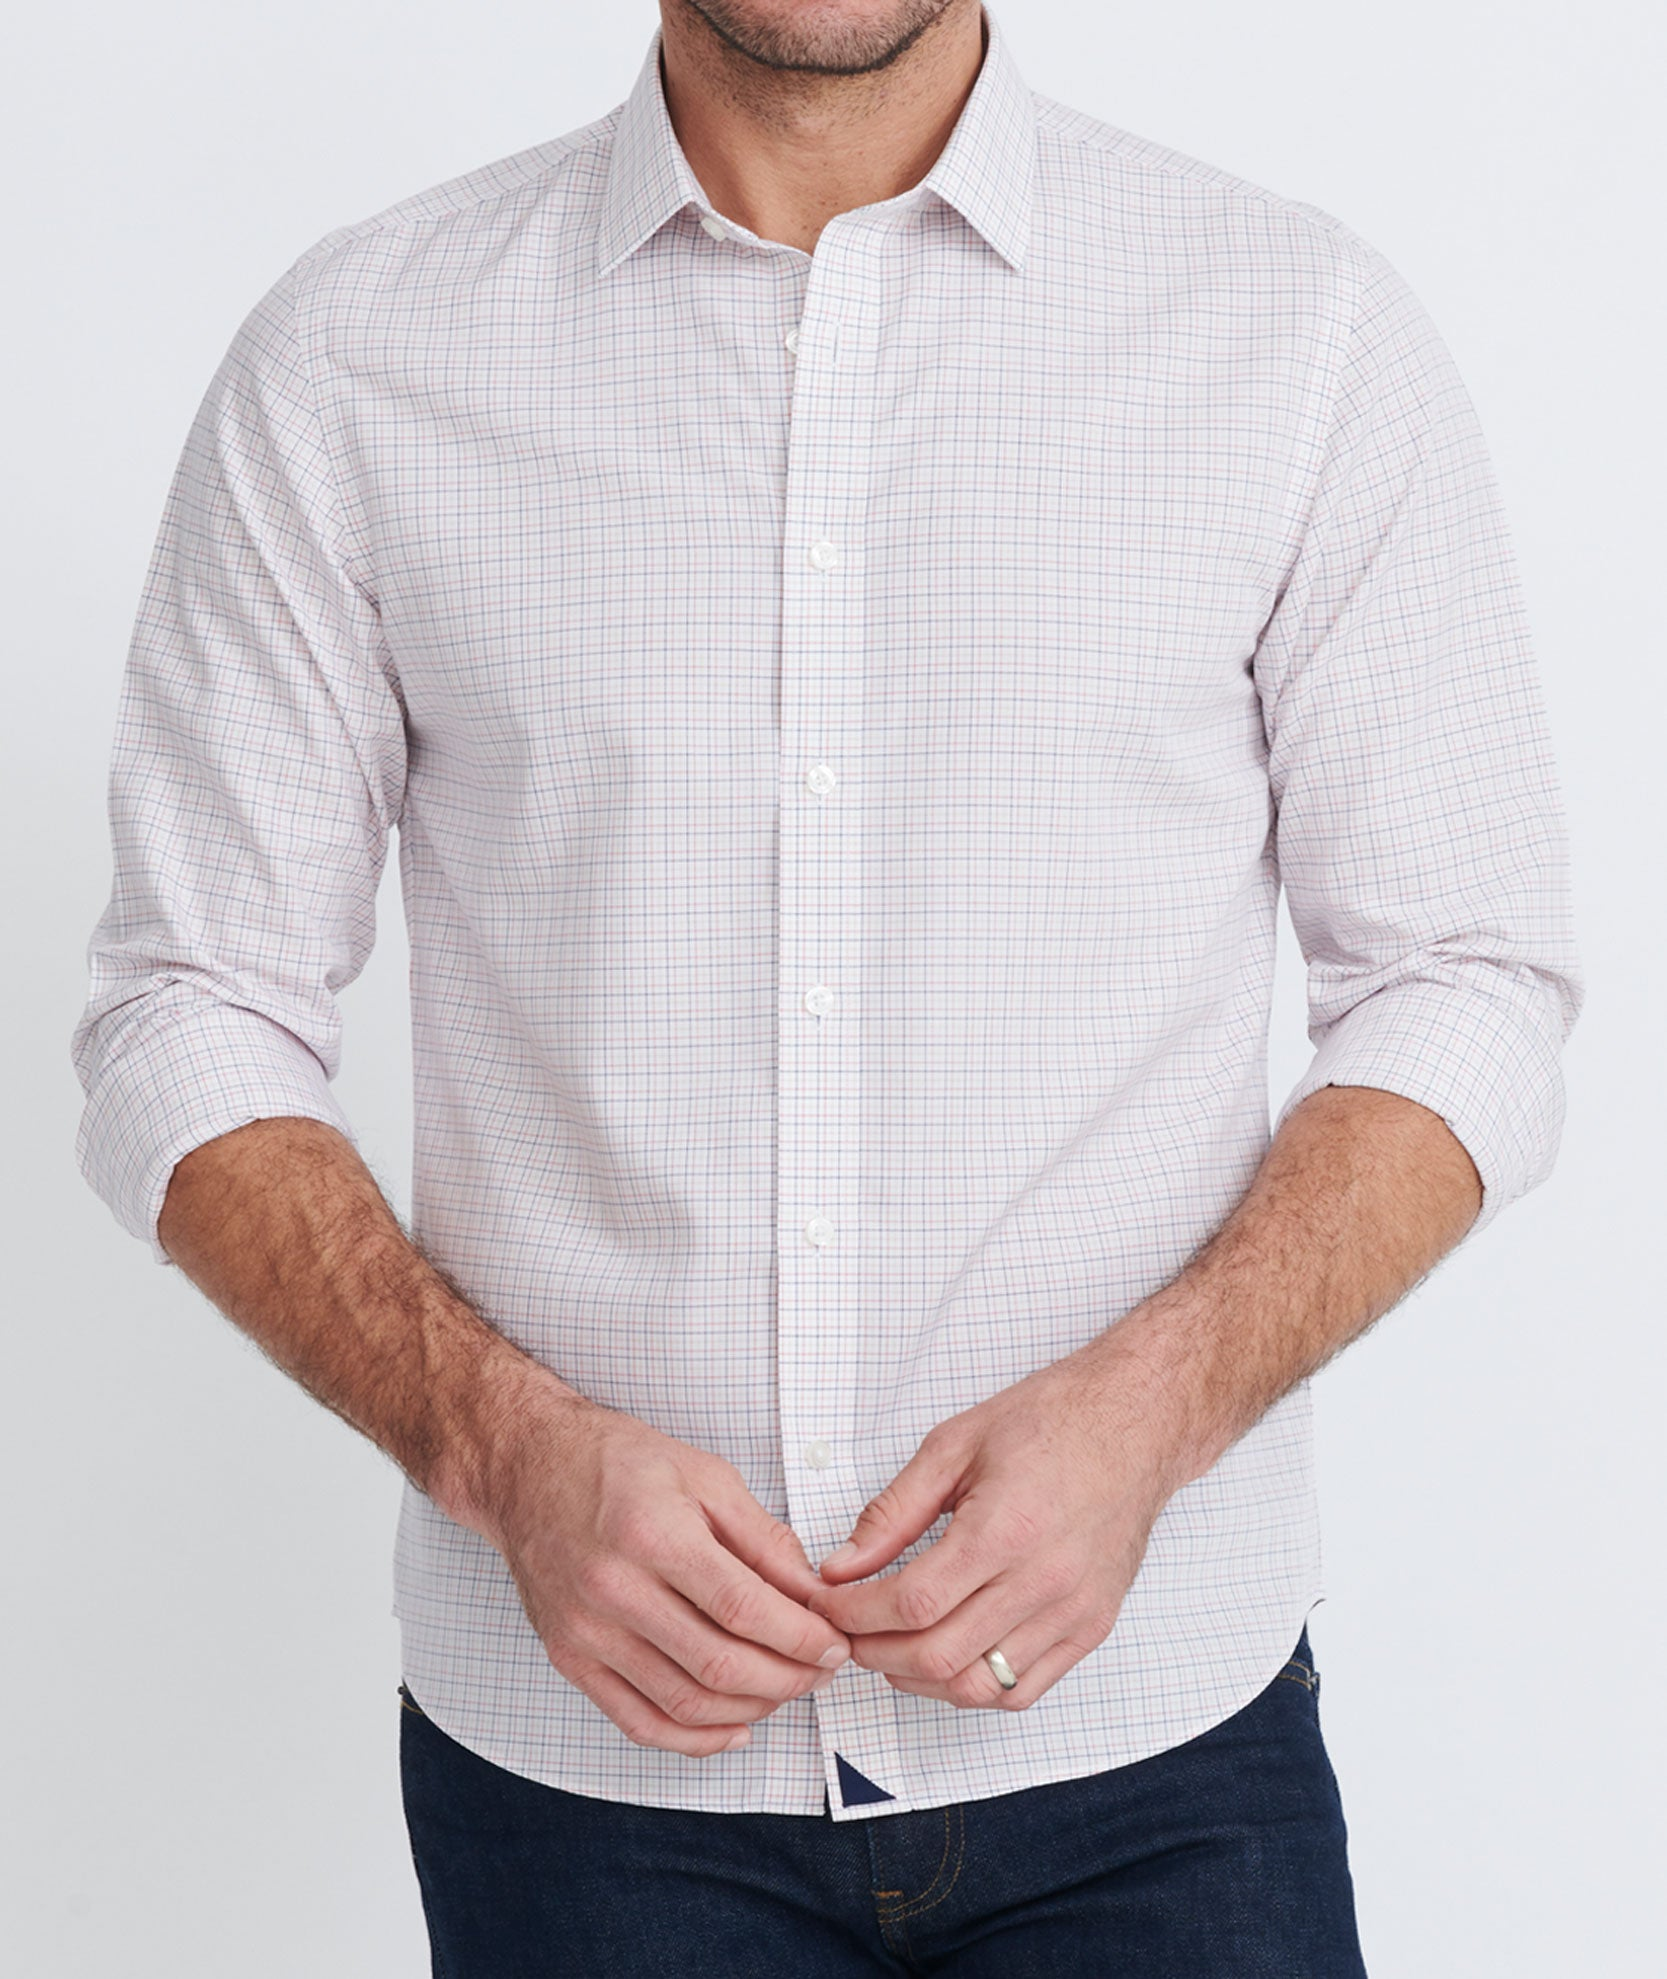 Relaxed Fit Shirts For Men Untuckit